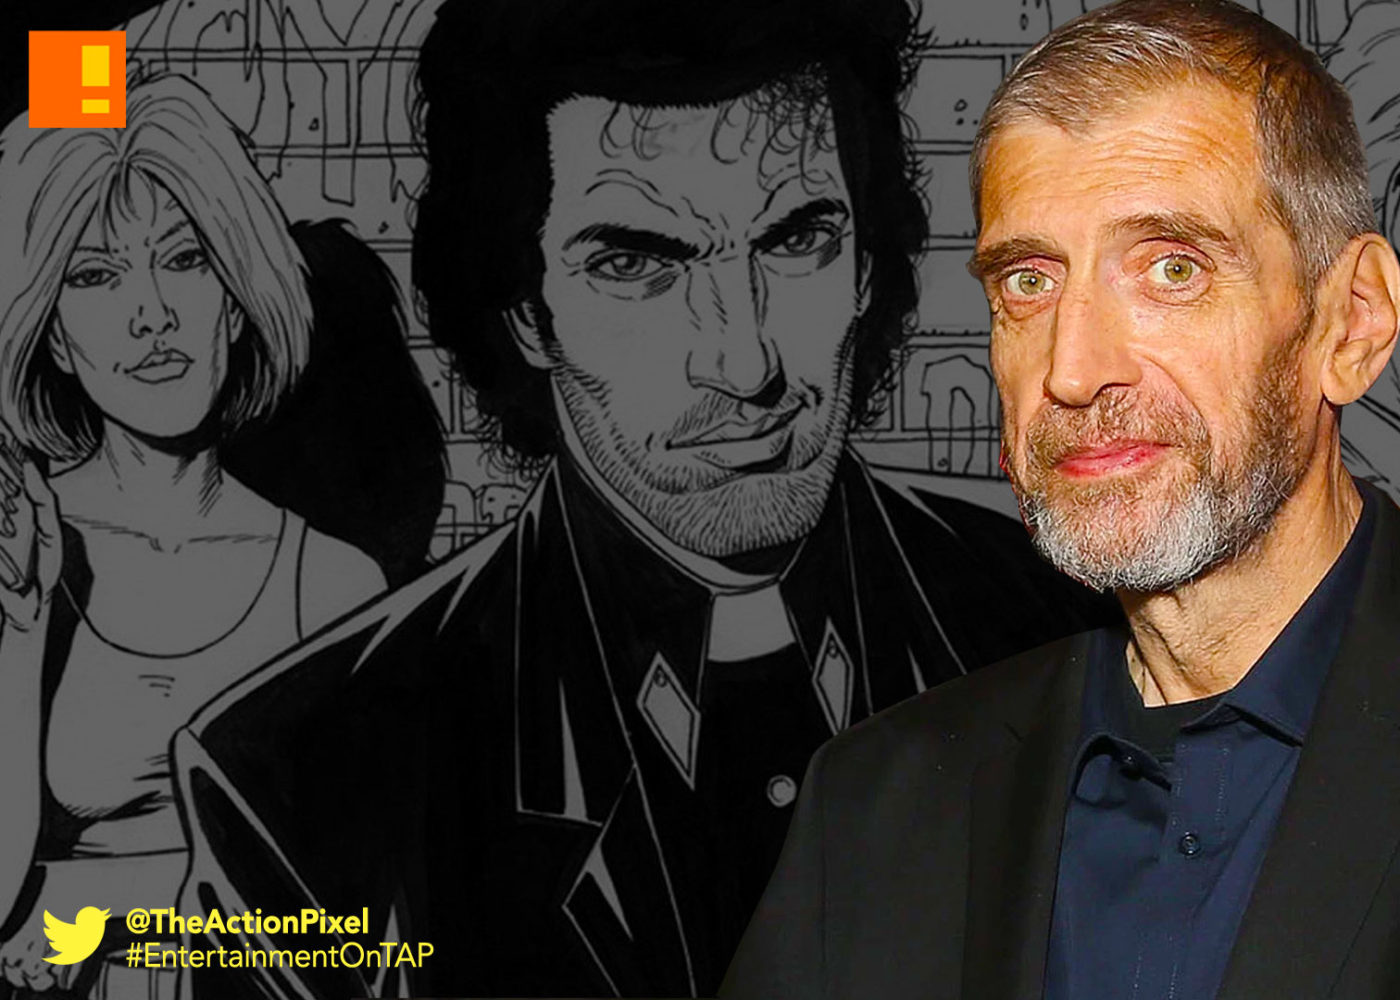 preacher, hellblazer, steve dillon, dies, passed away, entertainment on tap, the action pixel